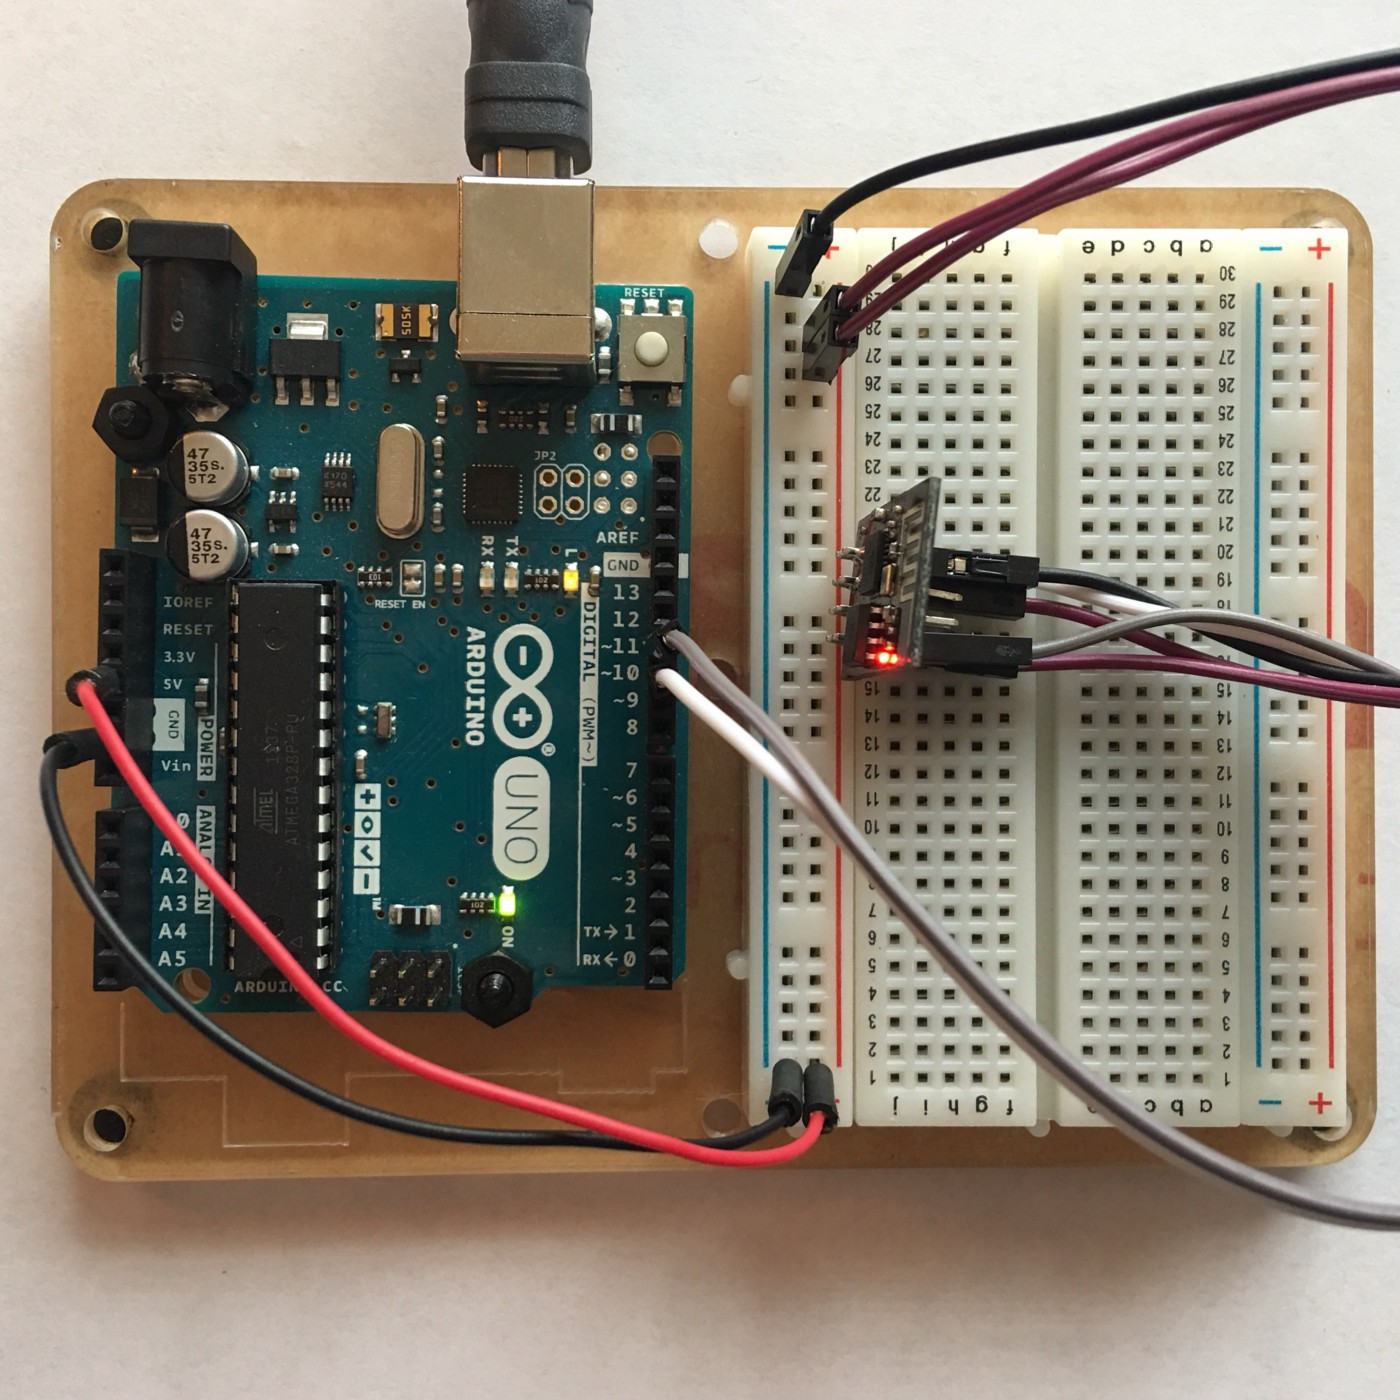 Using the ESP8266 WiFi Module with Arduino Uno publishing to ThingSpeak